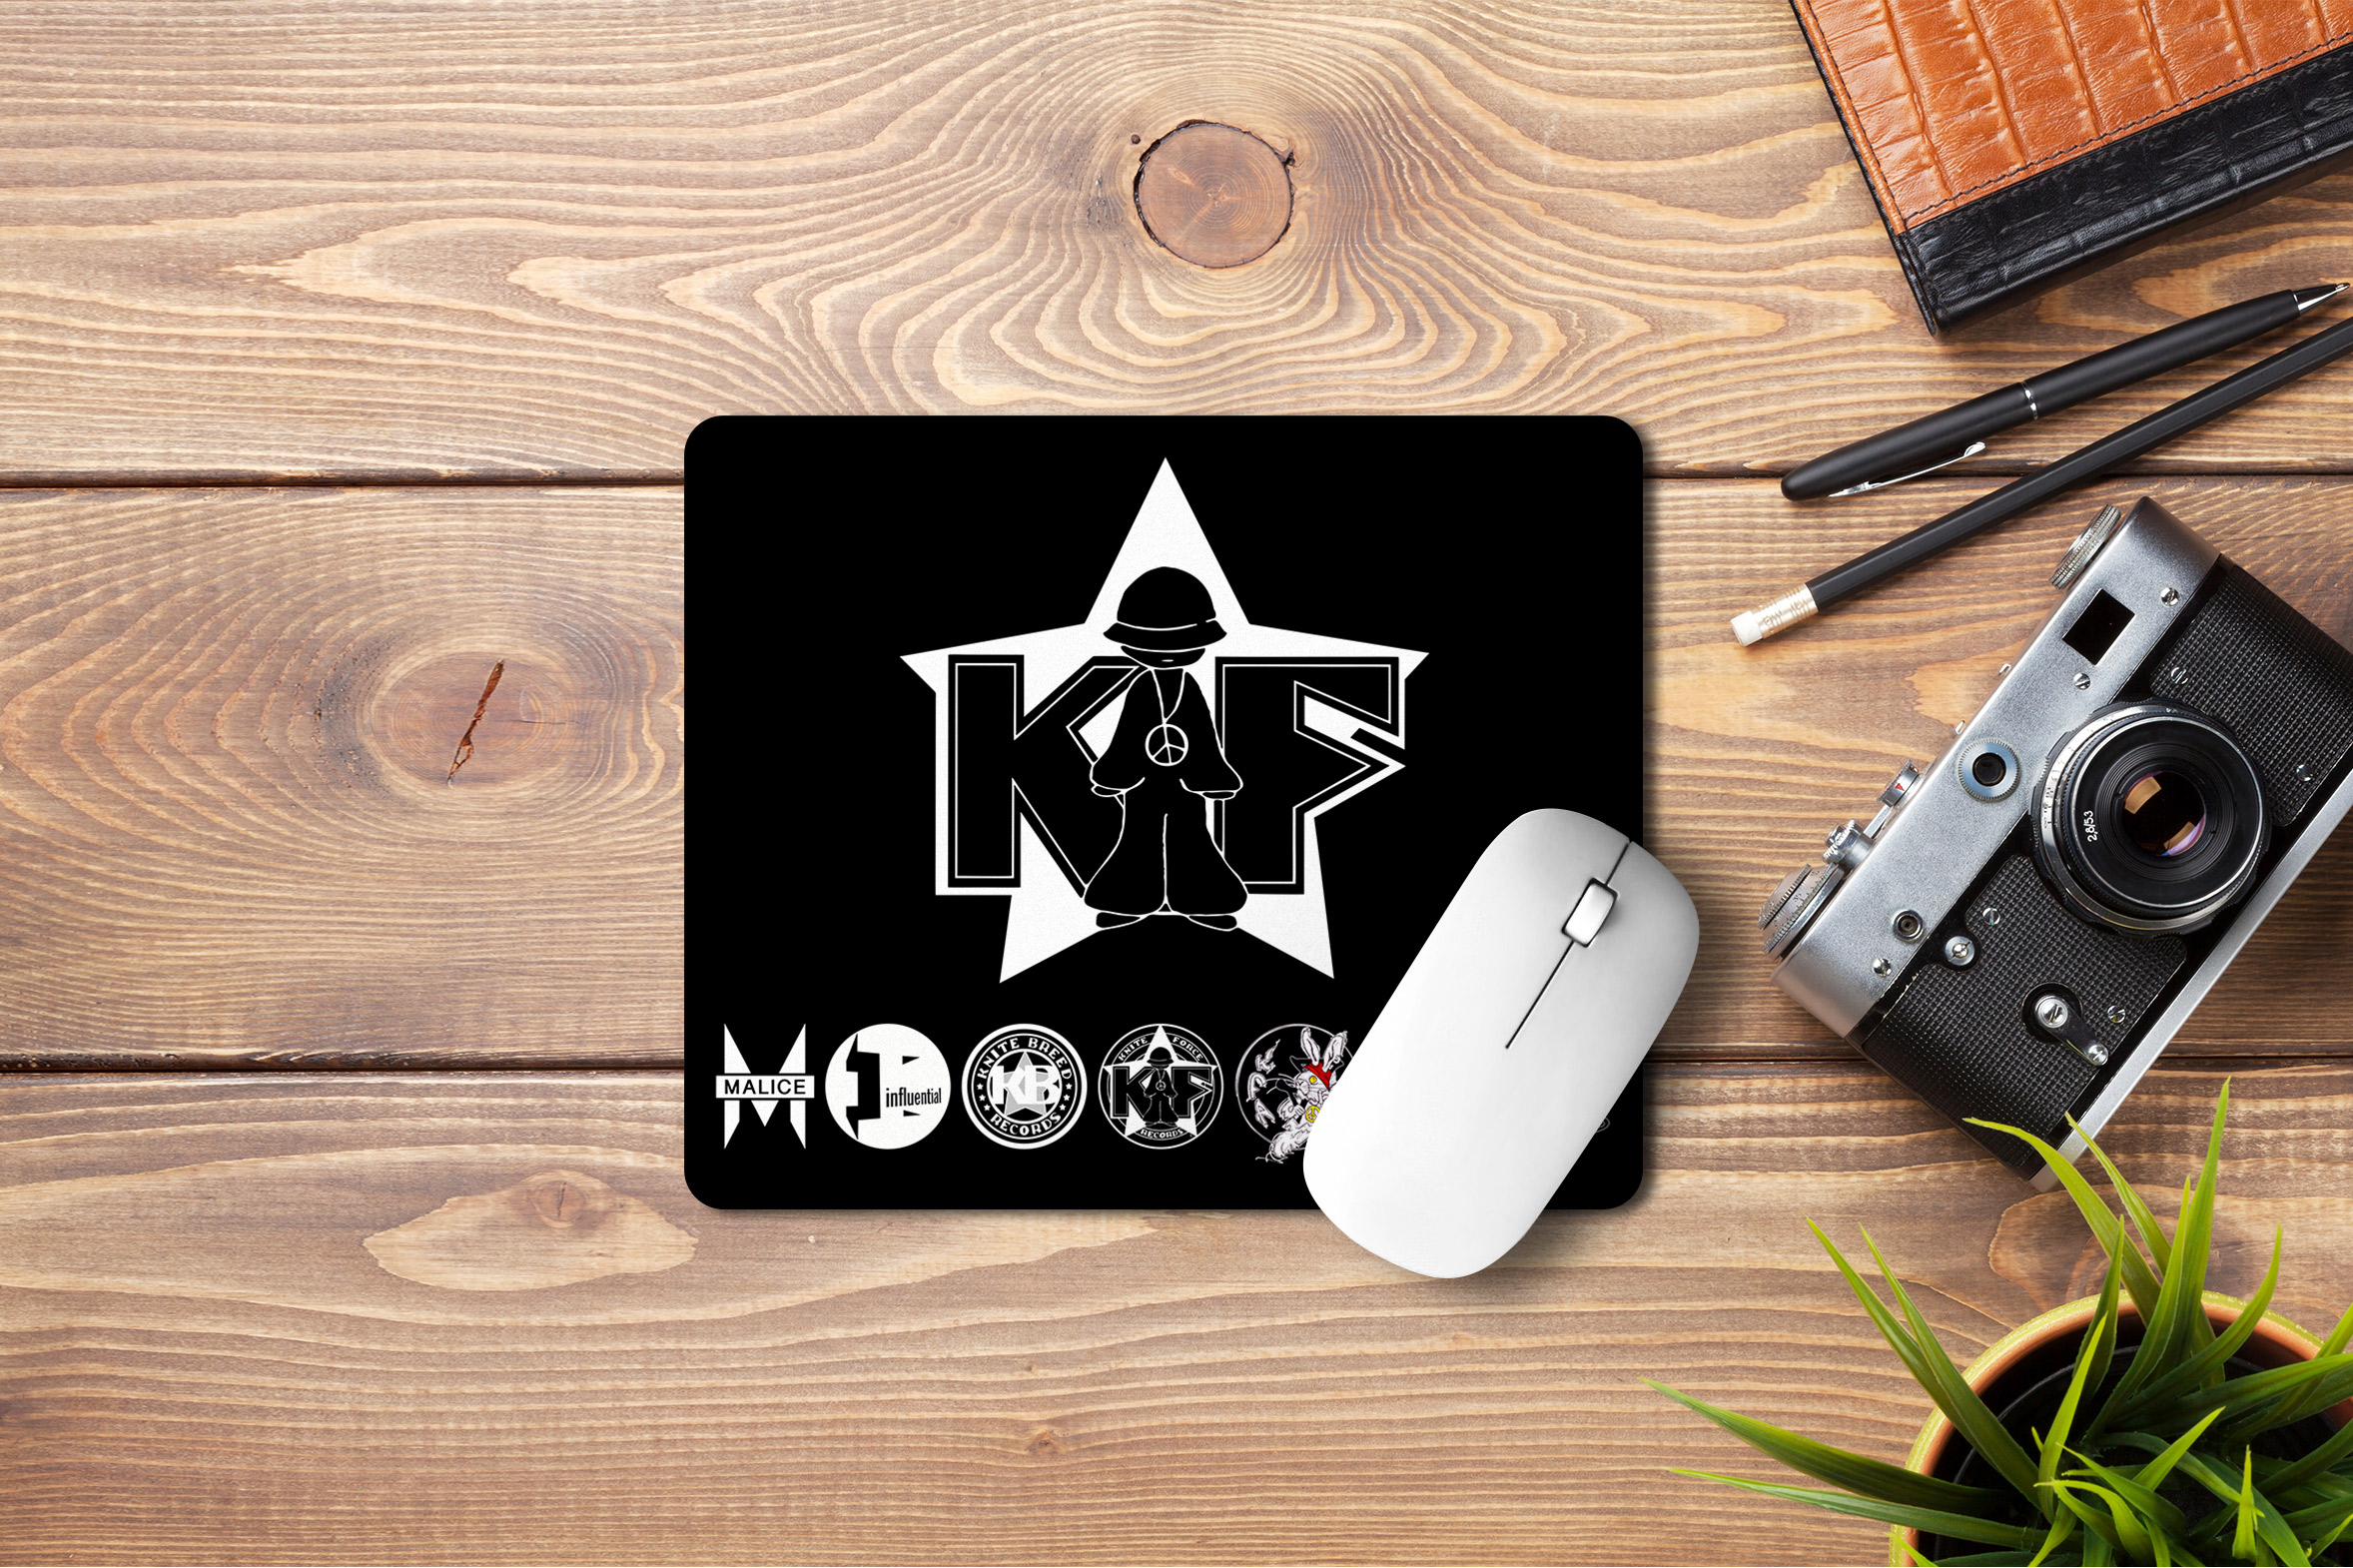 Kniteforce Family Labels Mouse Mat